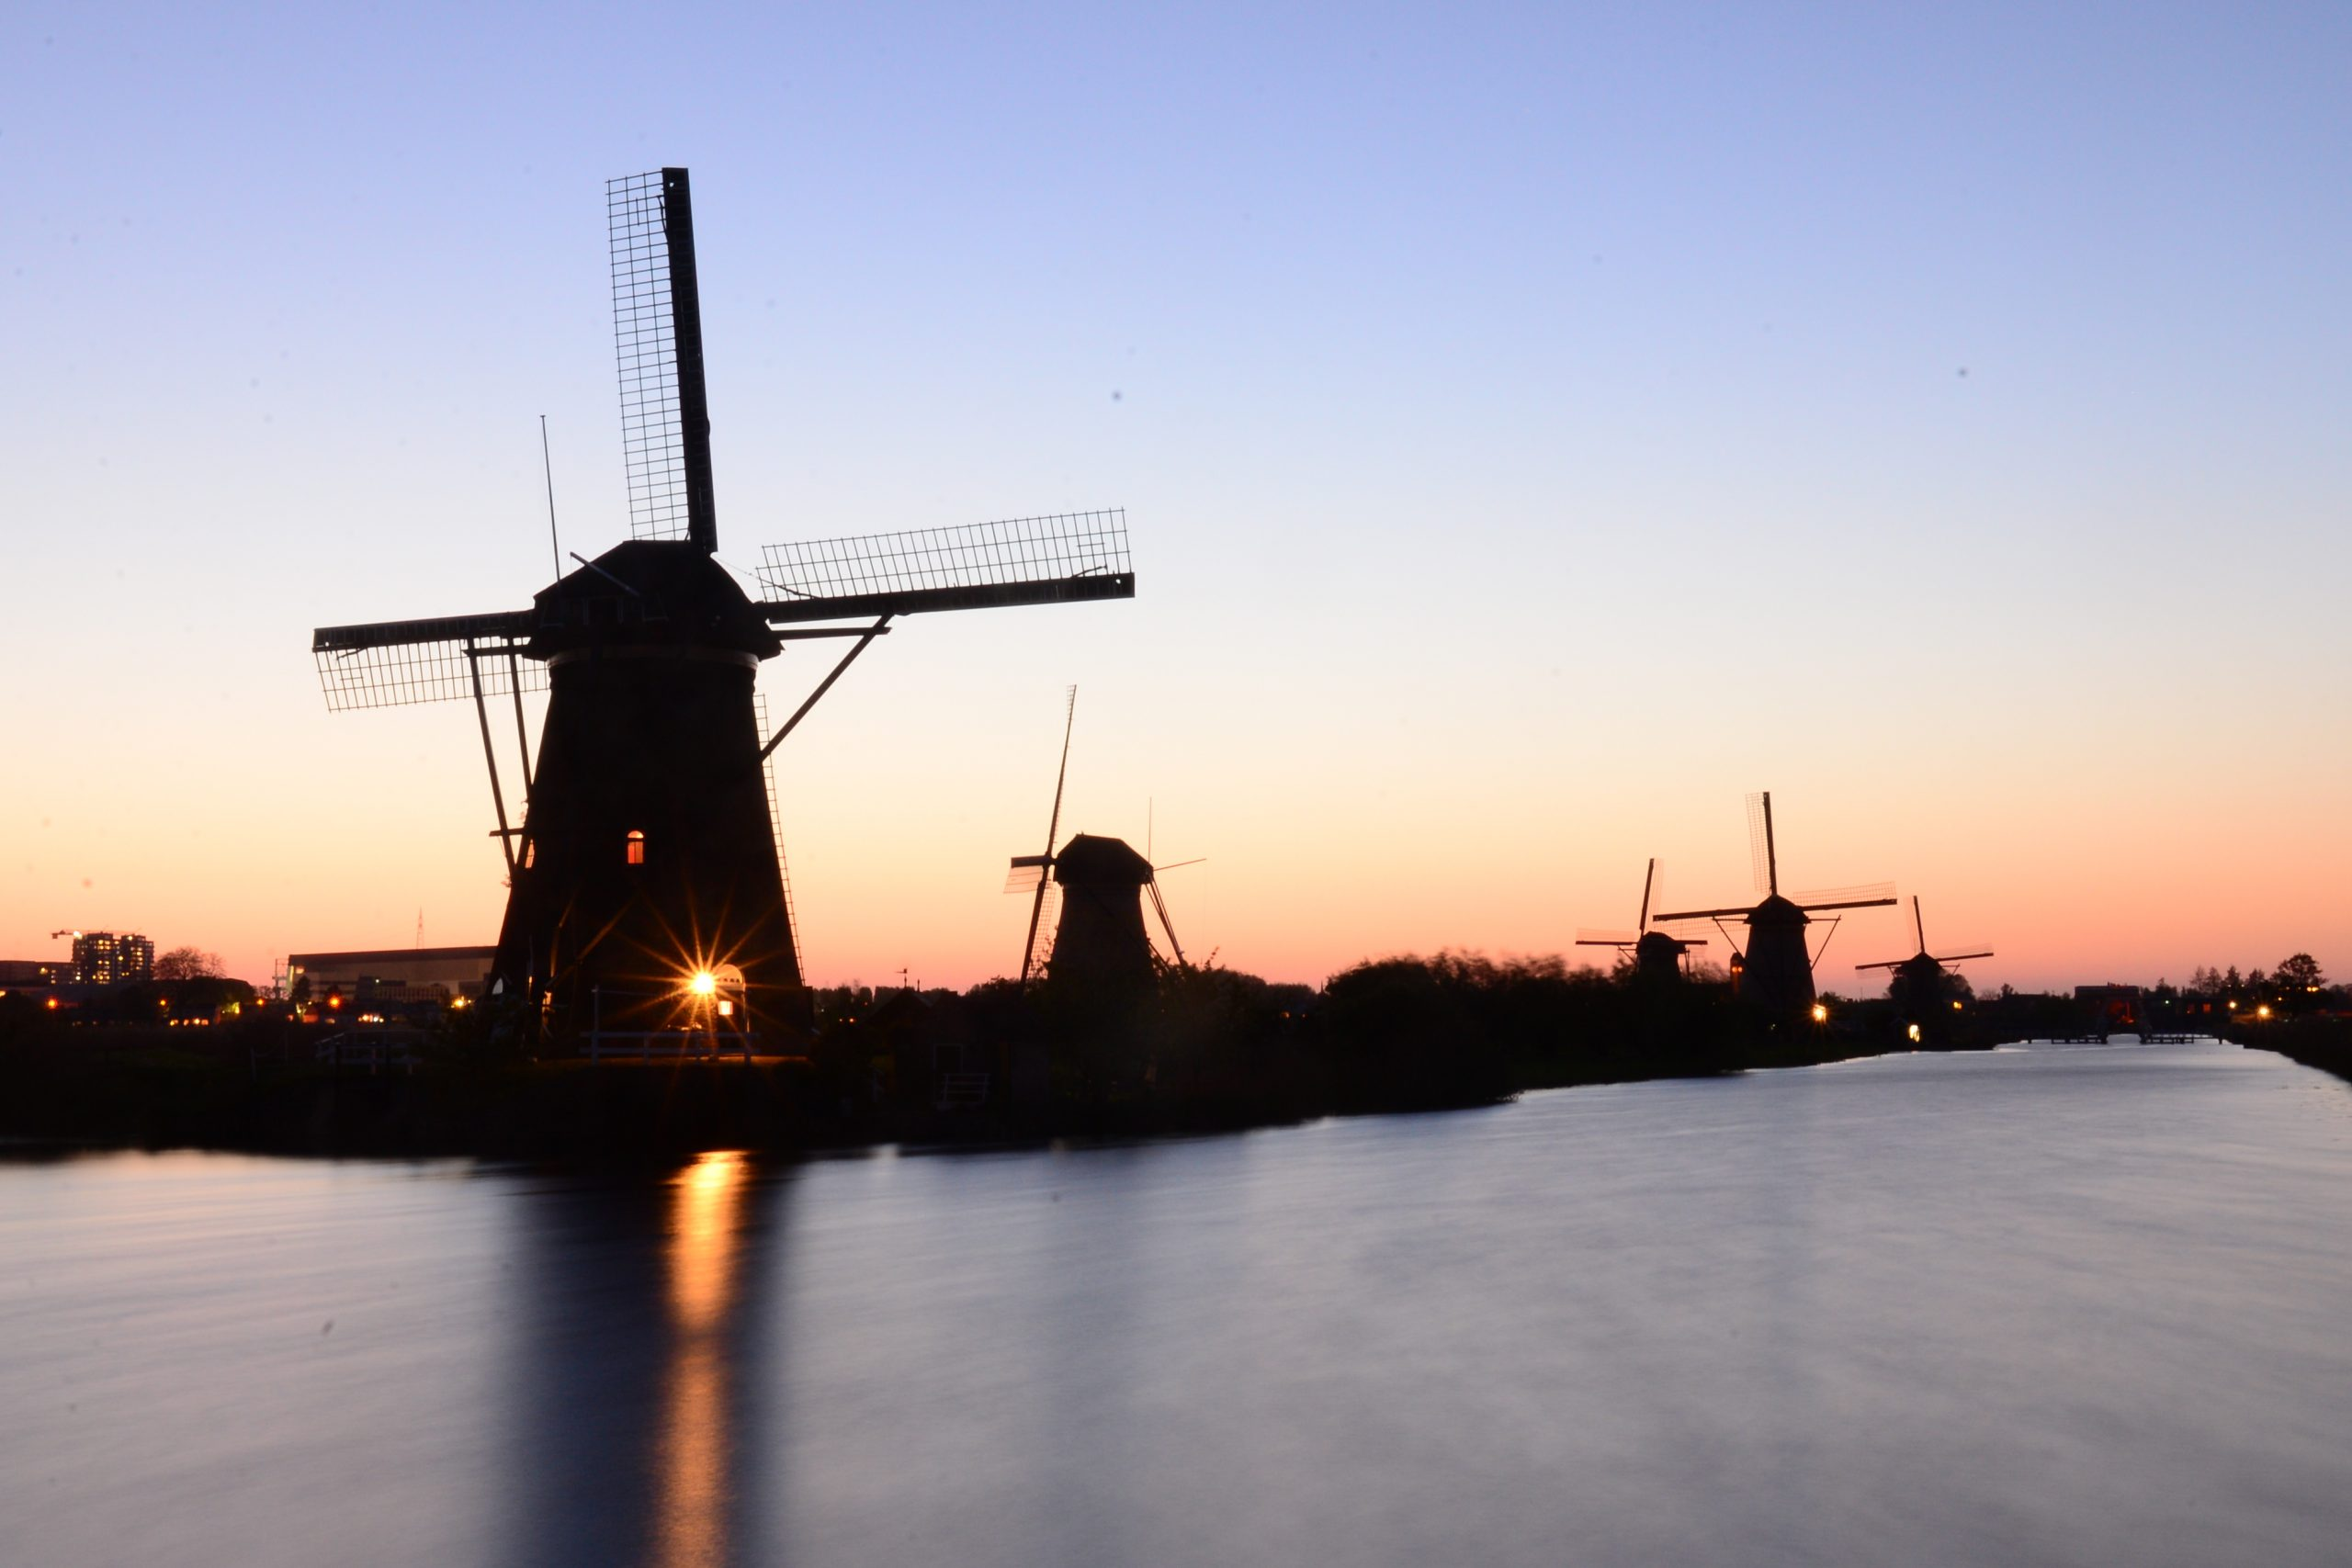 Kinderdijk (Netherlands) during Corona is a Once in a Lifetime!